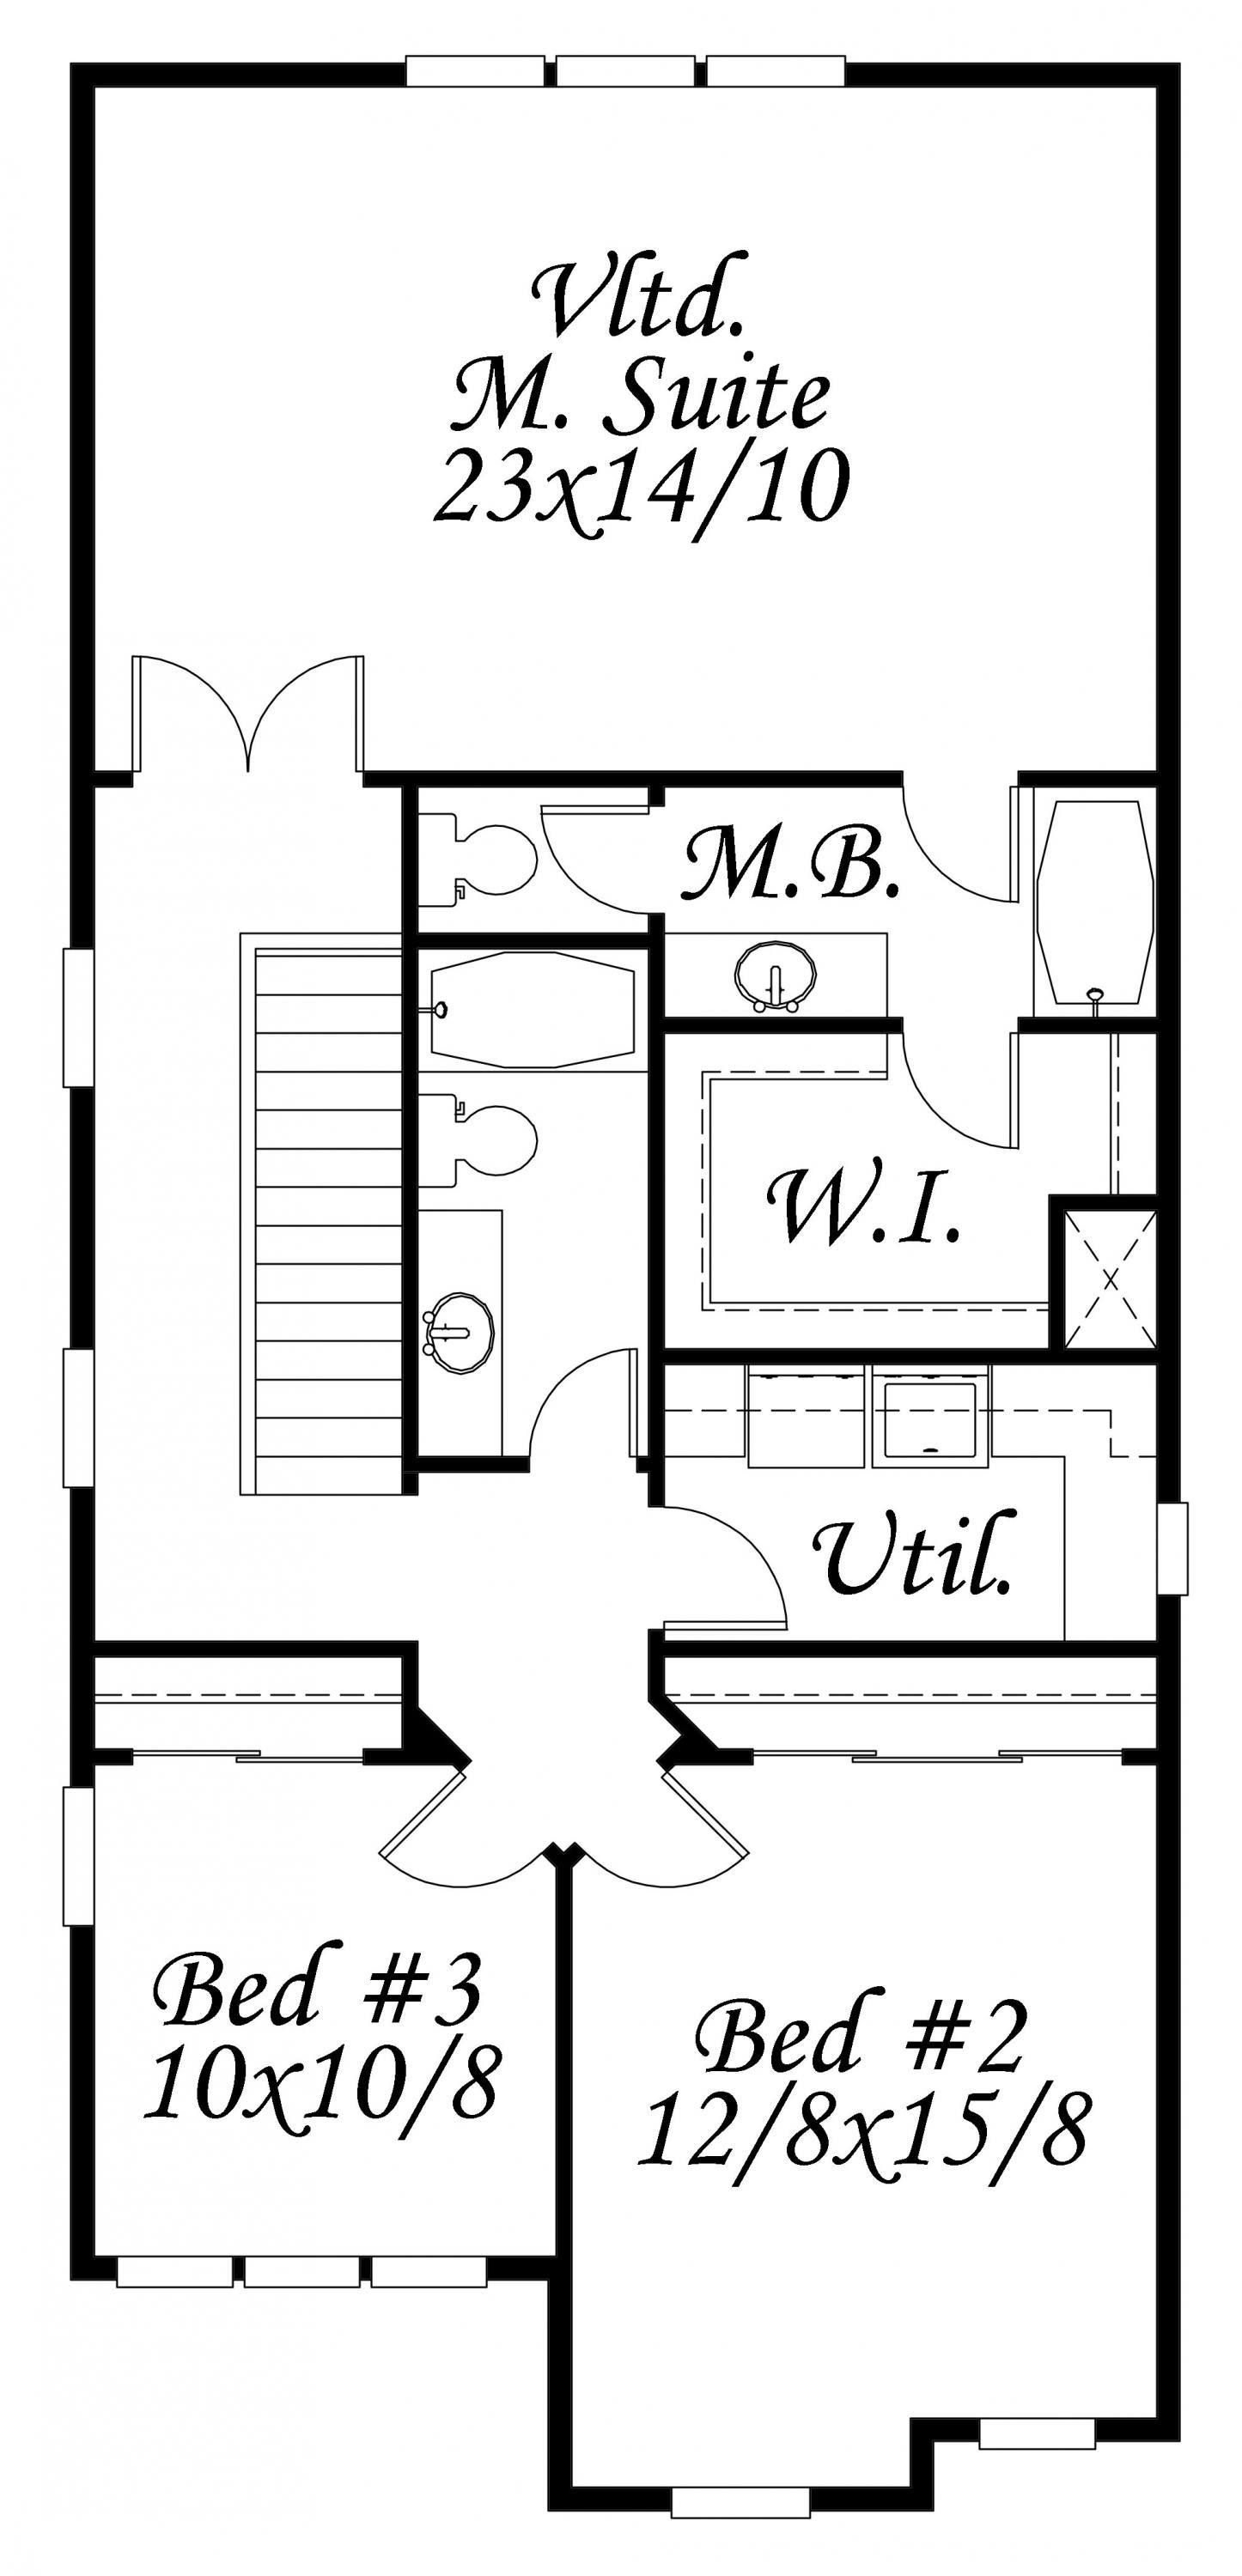 Ramble On on nature house plans, dreams house plans, family house plans, bridge house plans, friends house plans, fishing house plans, life house plans, dogs house plans, yoga house plans, funny house plans, basketball house plans, the pearl house plans, painting house plans, love house plans, personal house plans, art house plans, water house plans,